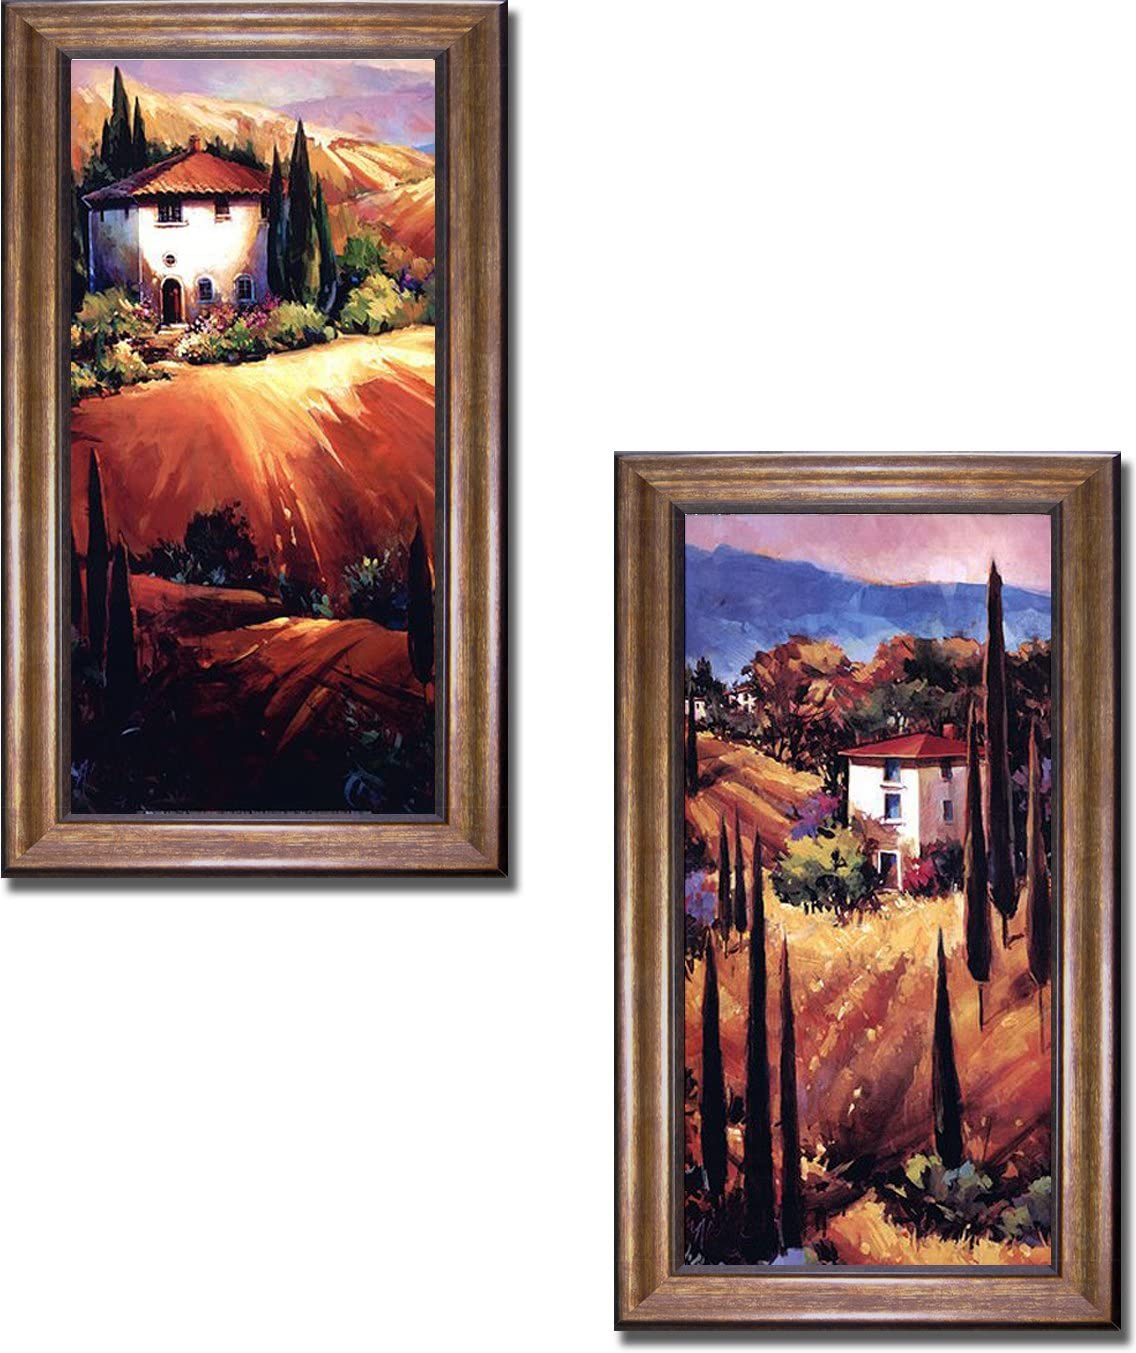 Amazon Com Artistic Home Gallery Tuscan Hills Golden Tuscany By O Toole 2 Pc Premium Bronze Framed Canvas Set 28 In X 16 In Each Framed Piece In Set Ready To Hang Posters Prints